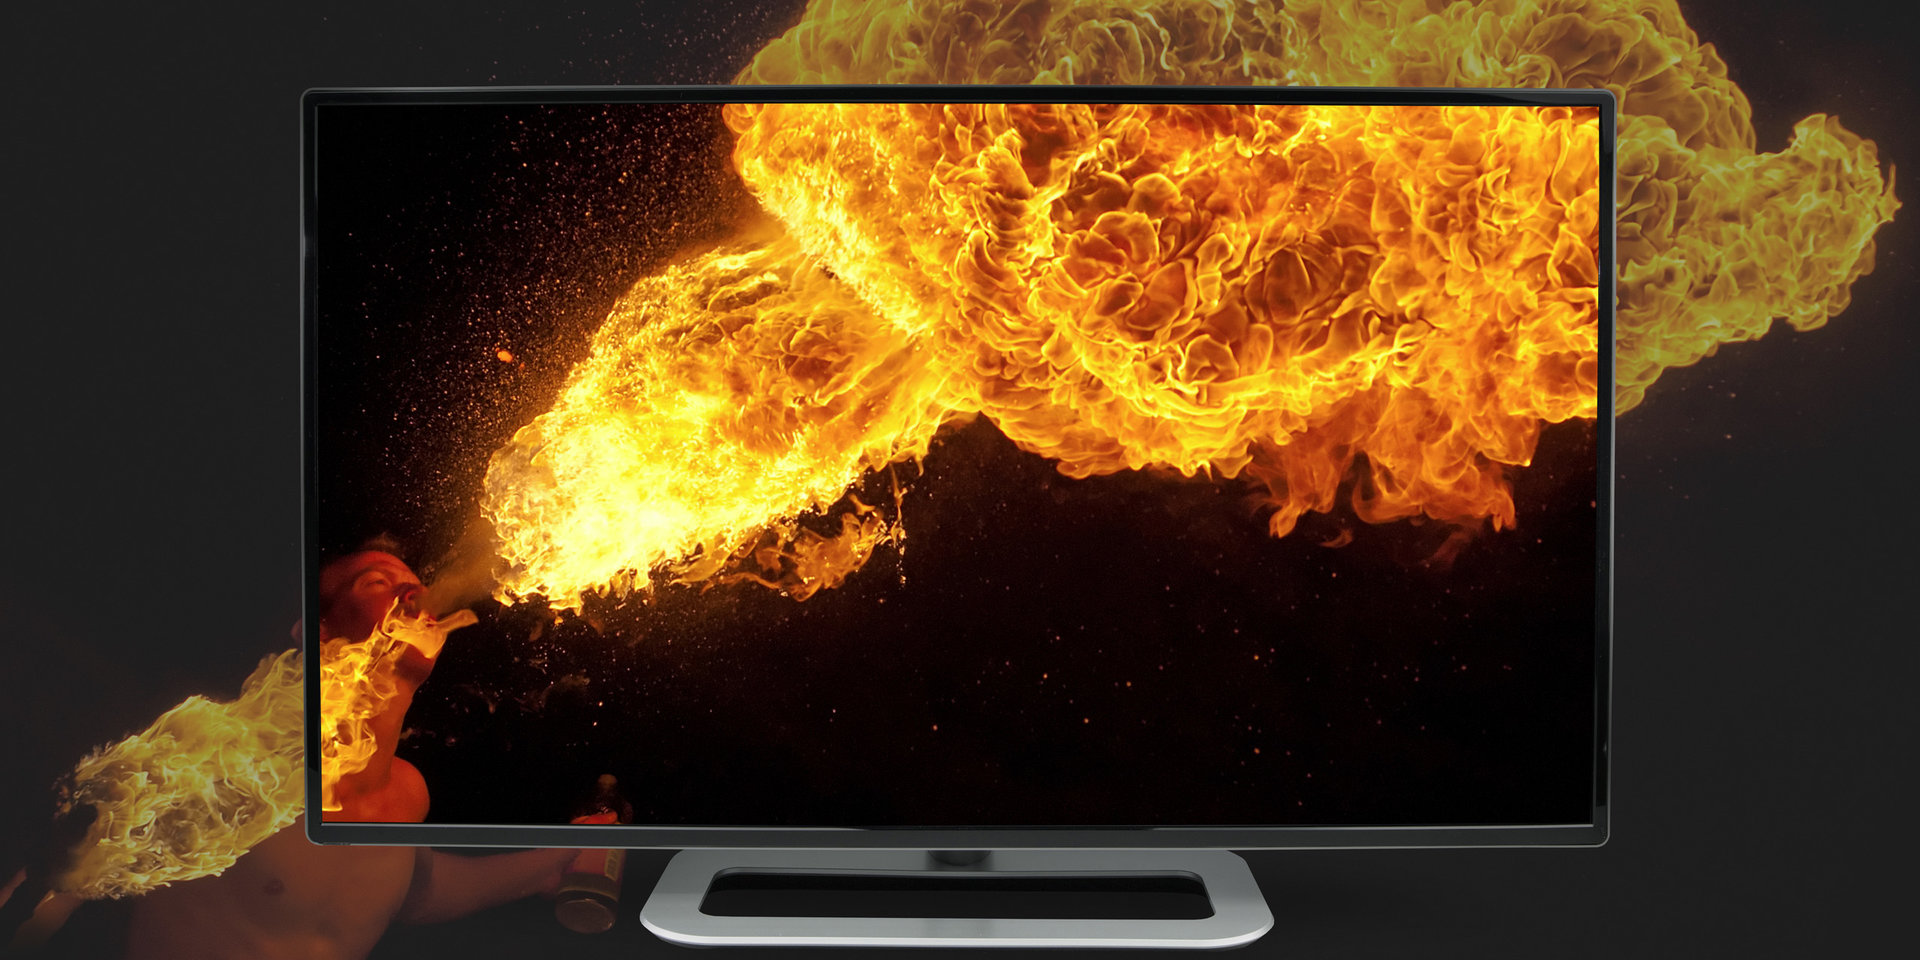 Dolby Vision – Dramatically Brighter